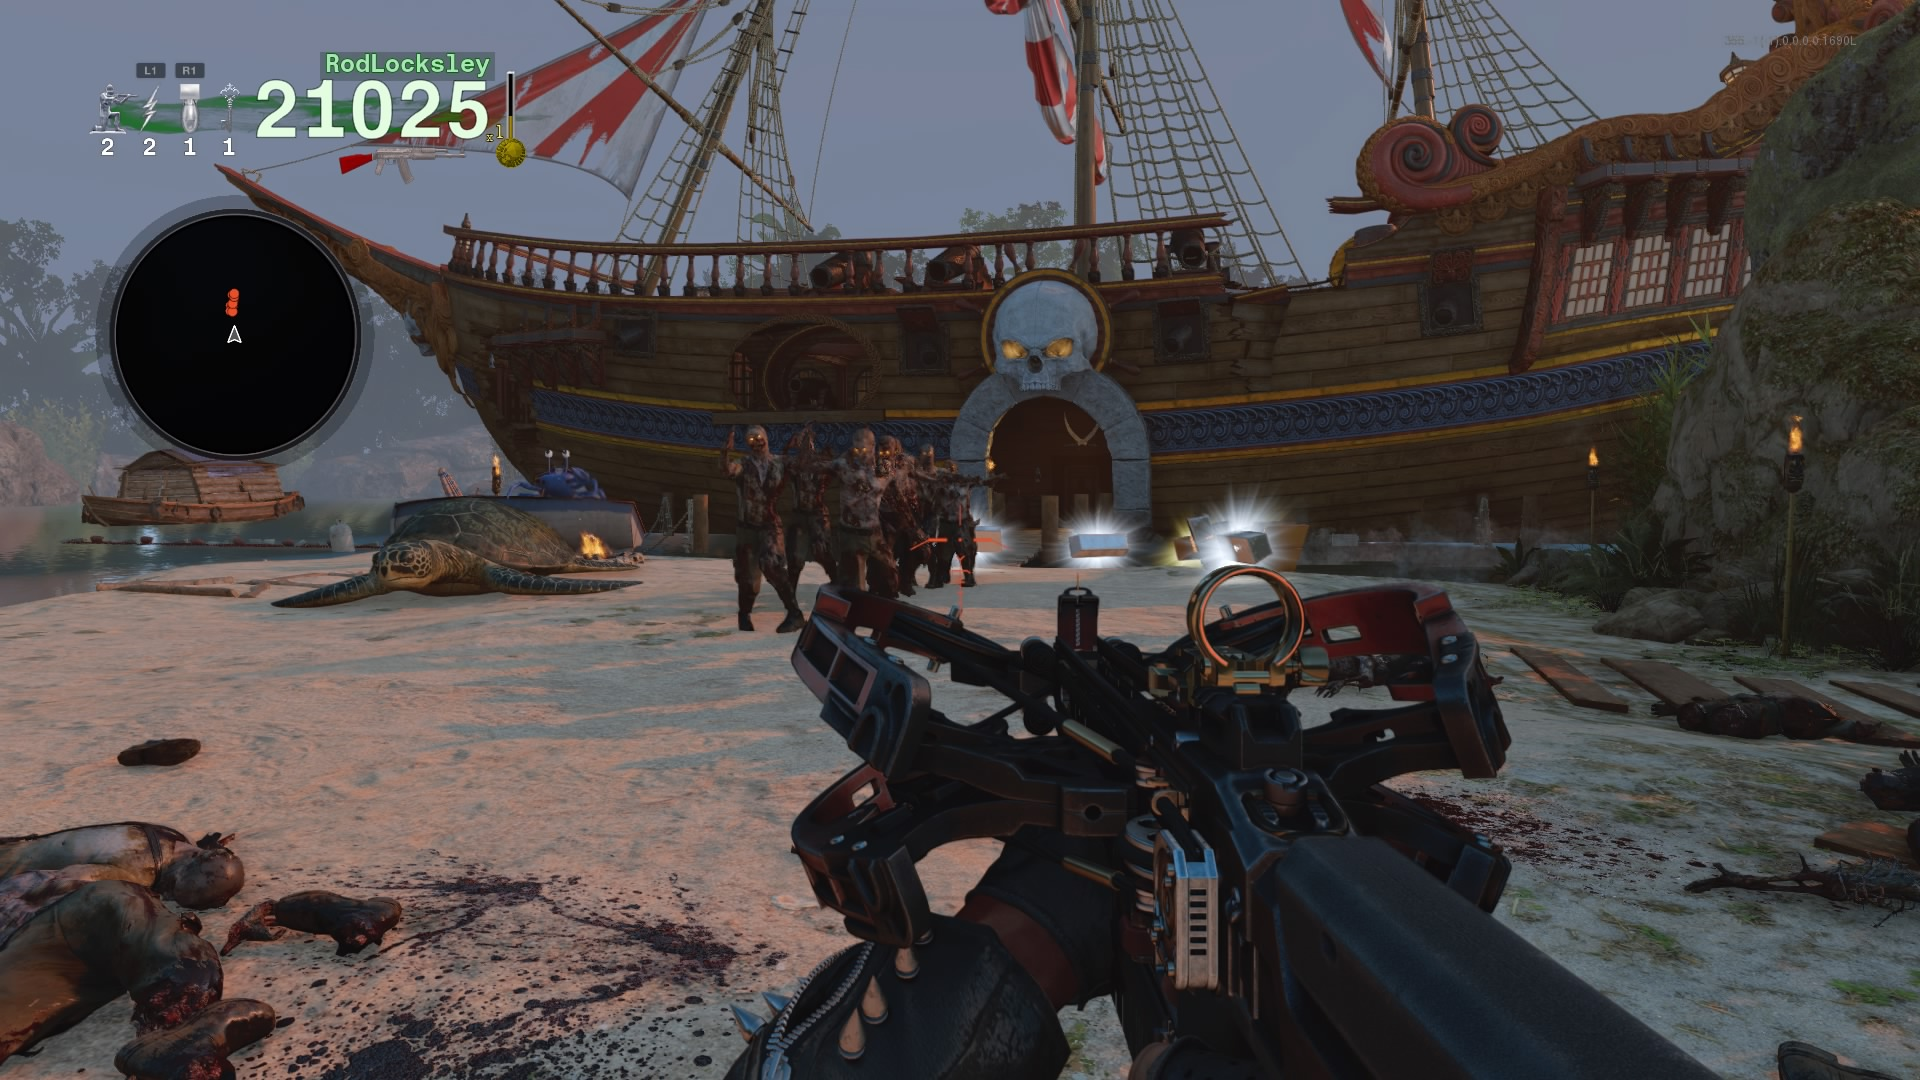 cold_war_splash Call of Duty: Black Ops Cold War - PlayStation 4 Review